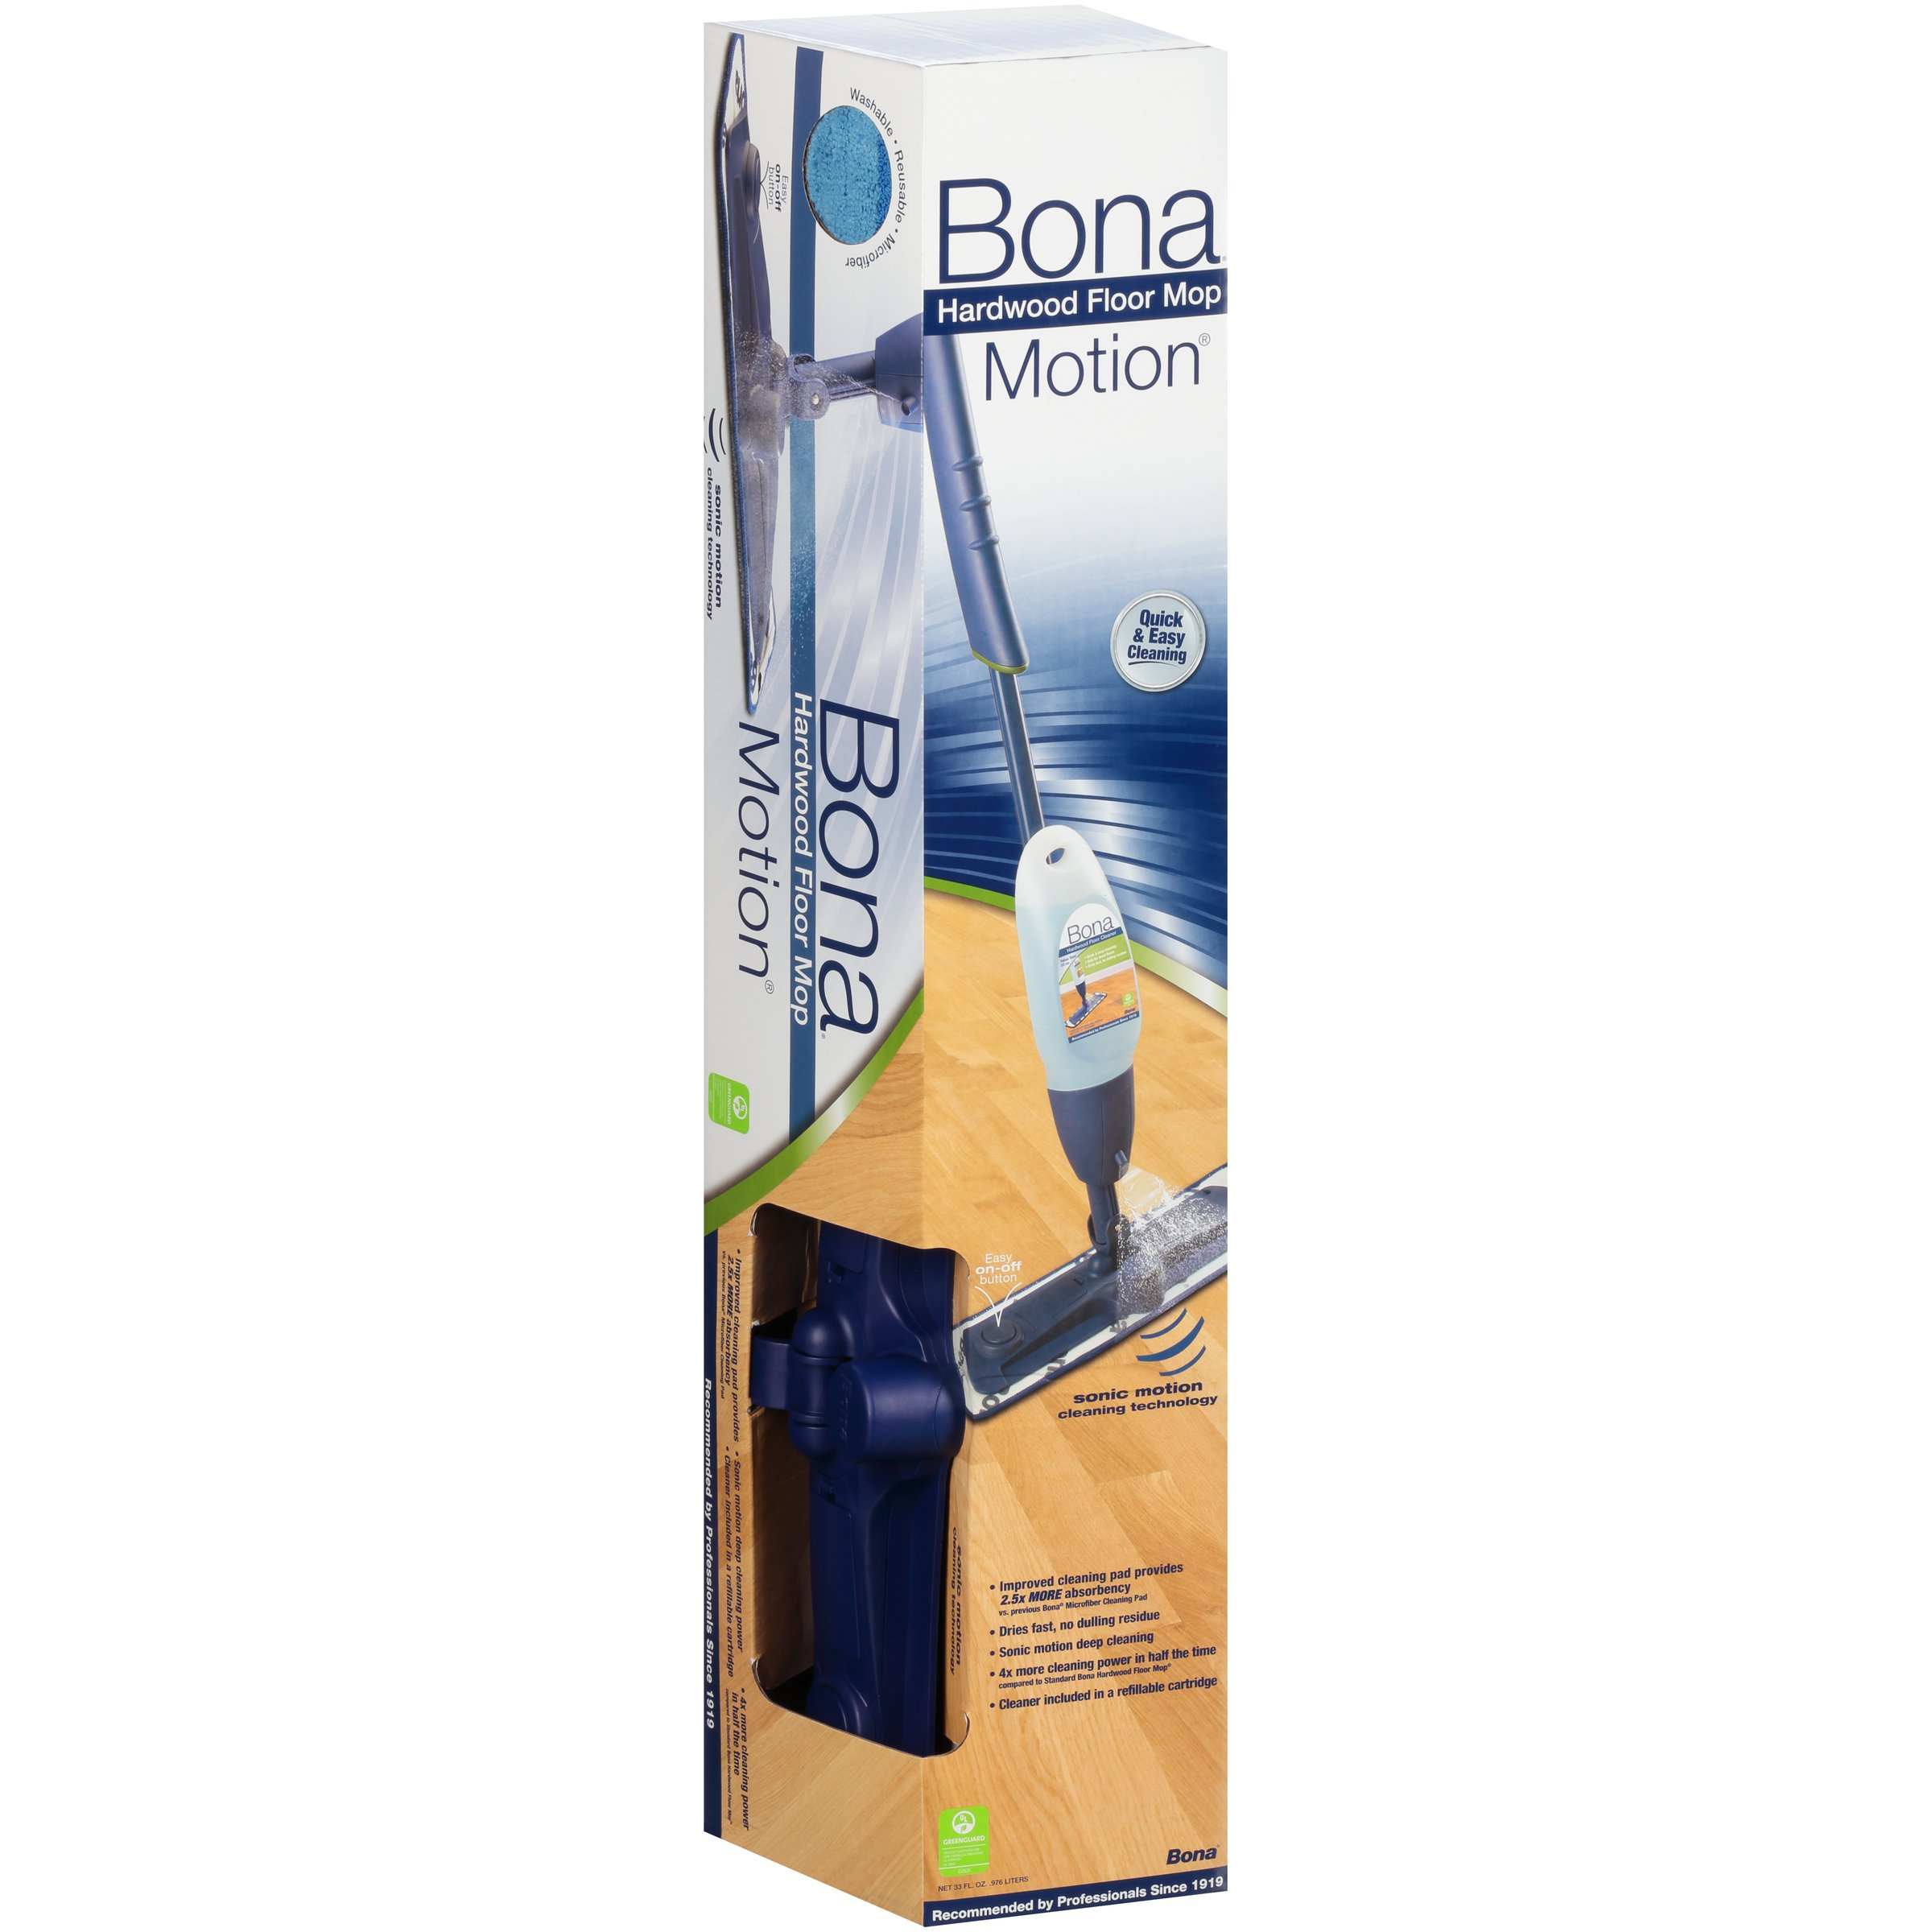 Bona Motion Hardwood Floor Mop